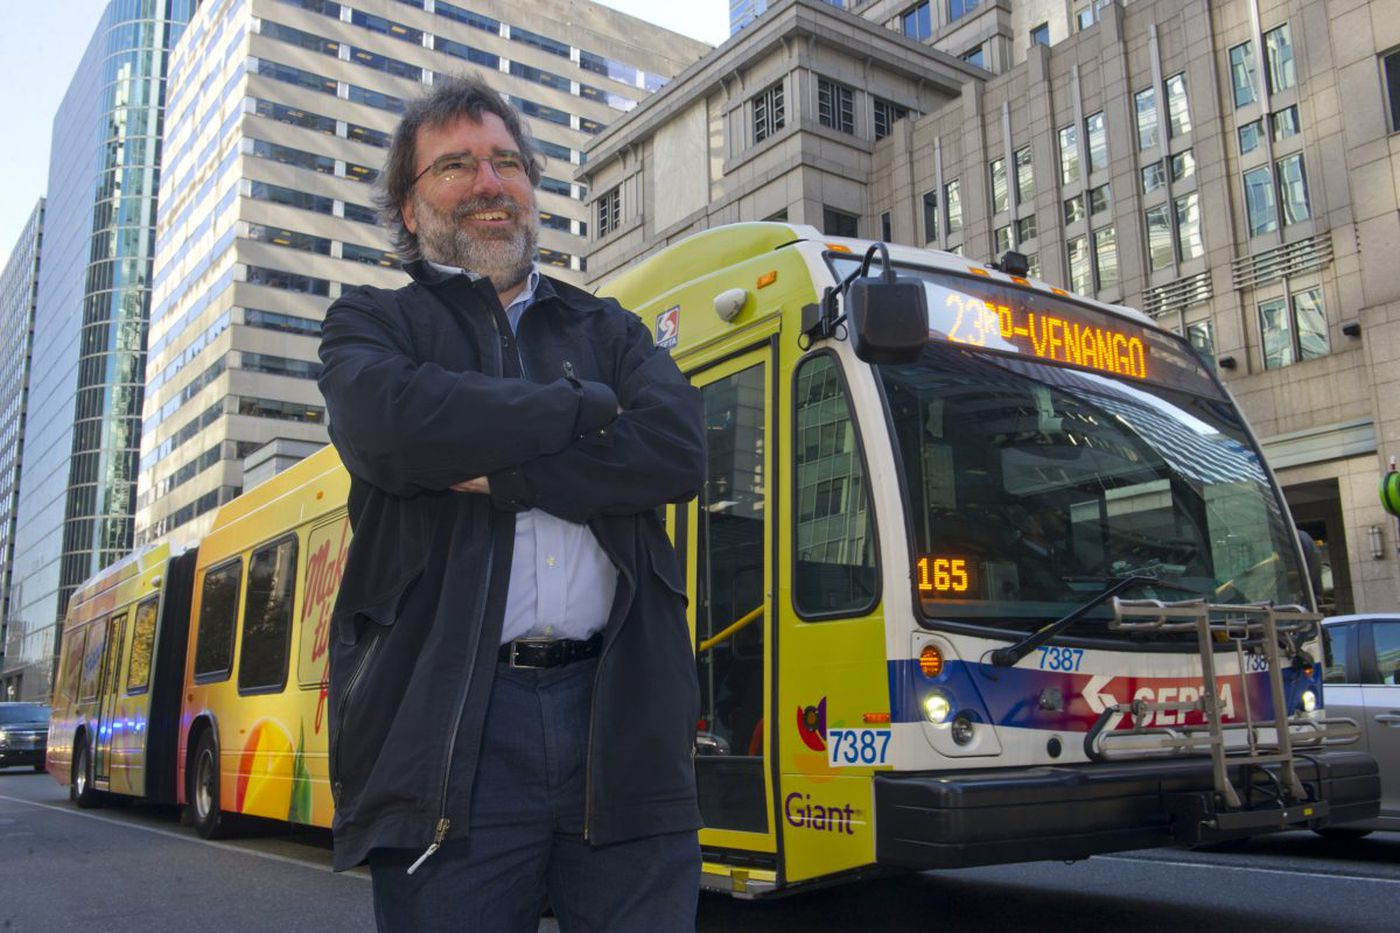 Transit riders unions may be coming to Philly